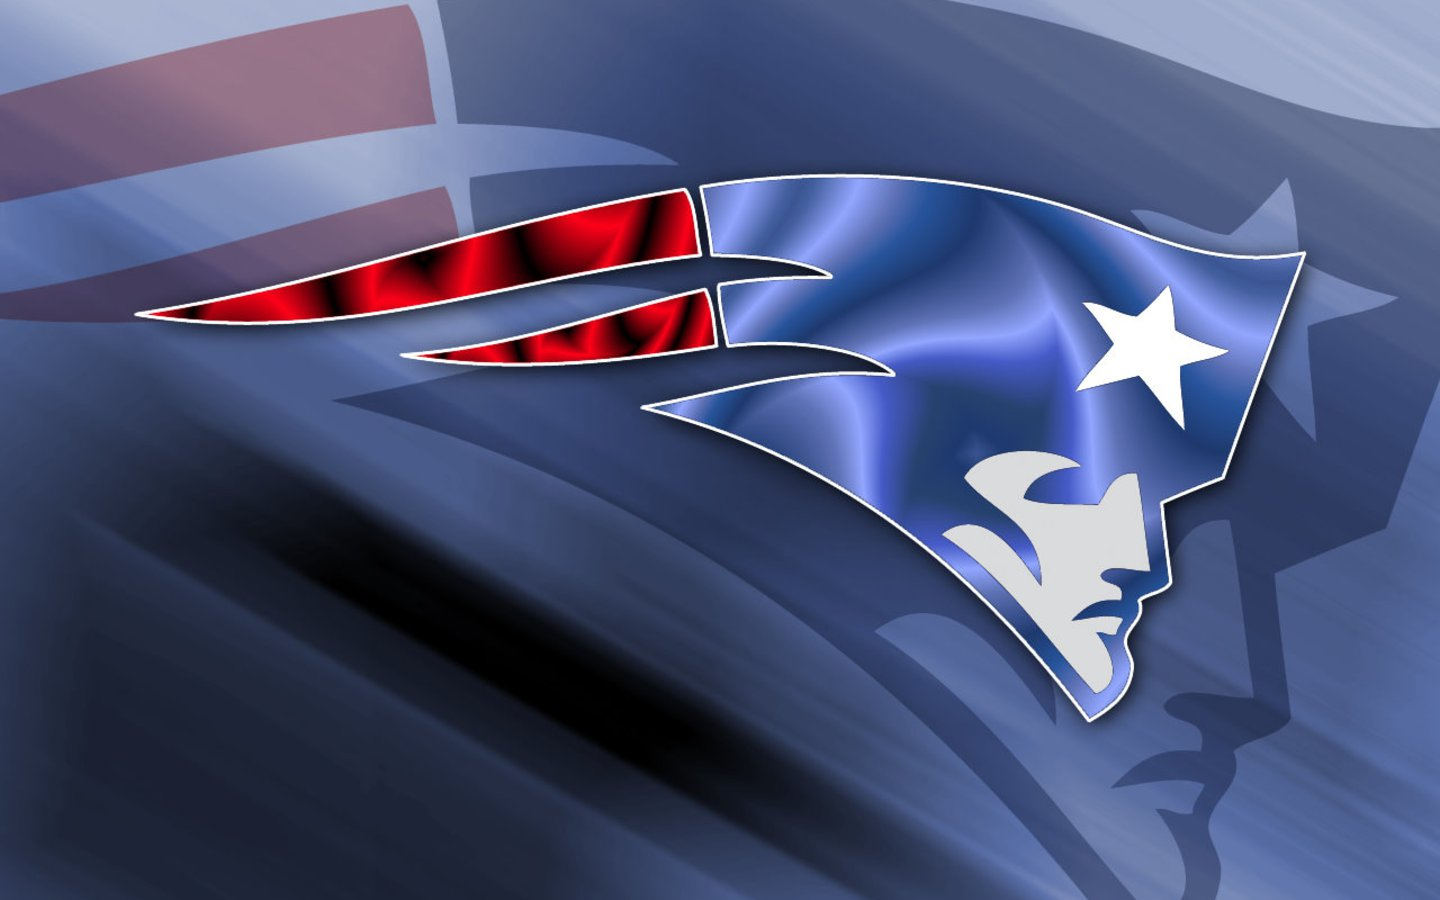 More New England Patriots wallpaper wallpapers New England Patriots 1440x900